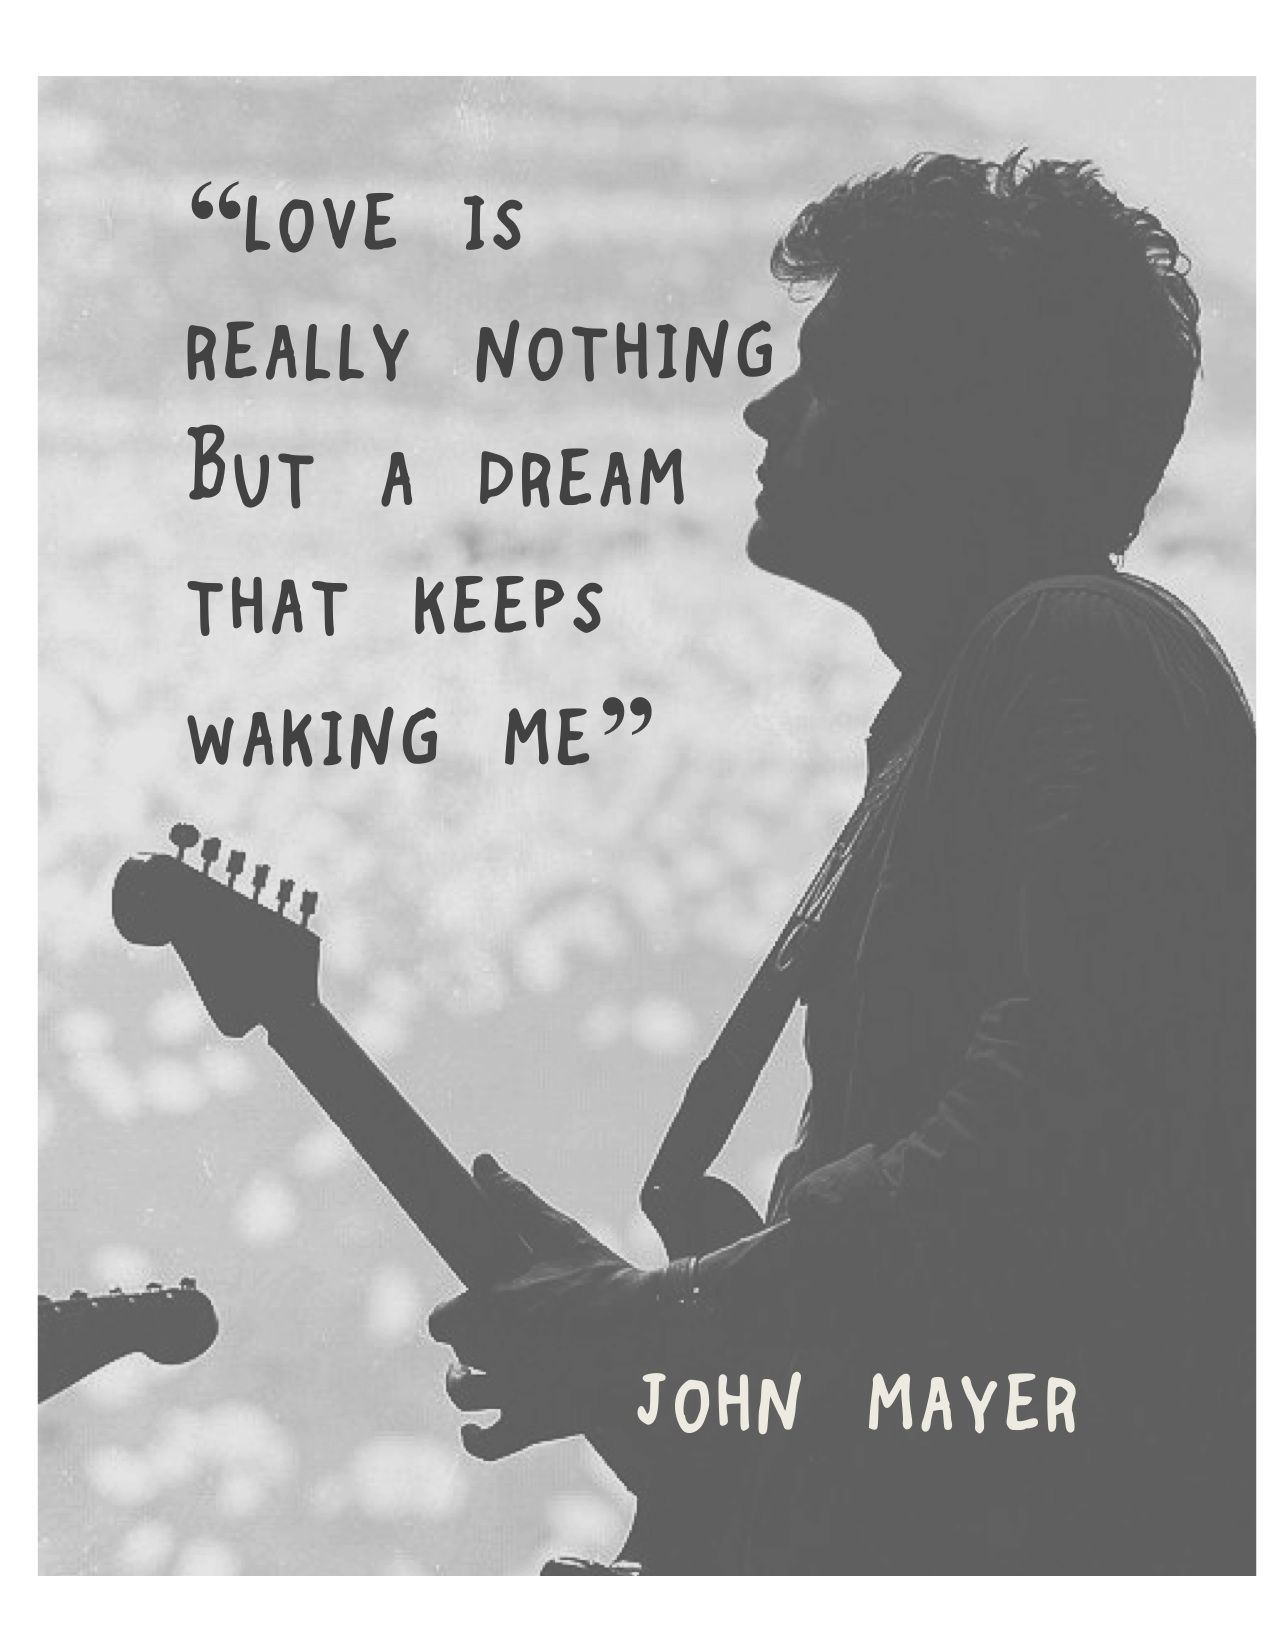 I Love You Quotes John Mayer : John Mayer #edgeofdesire #john #mayer Quotes,Songs, and Sayings P ...